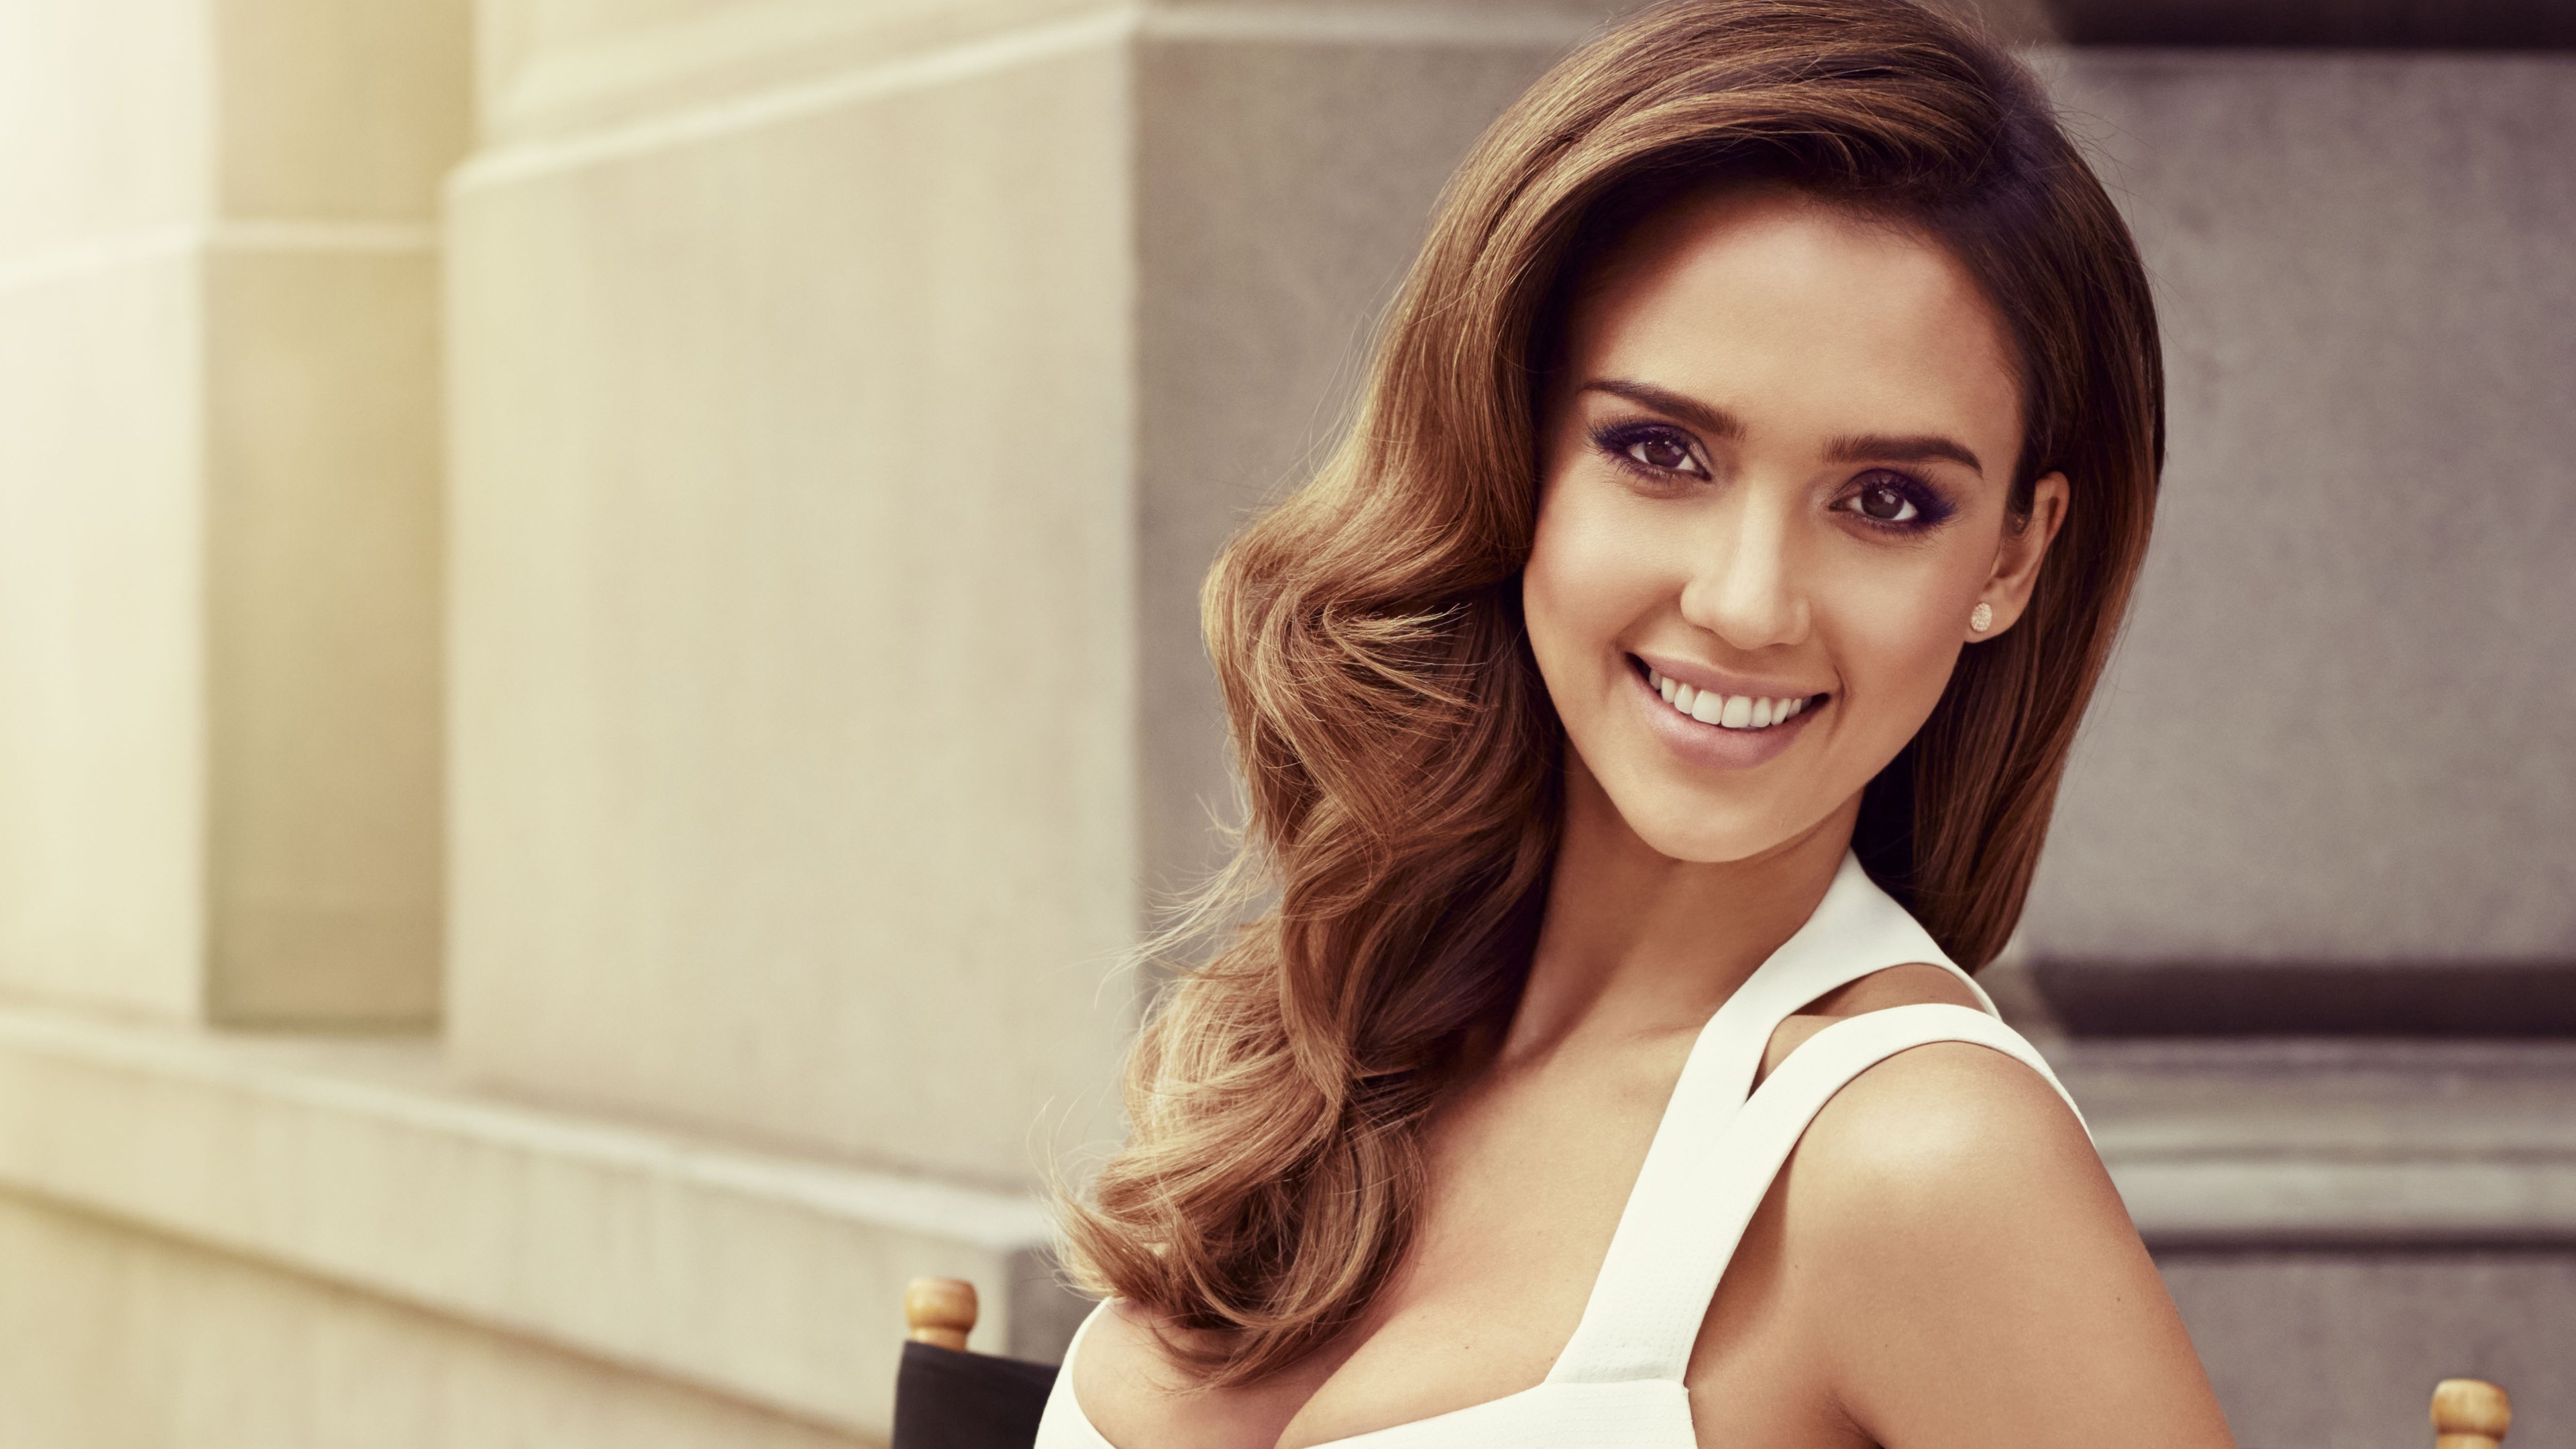 jessica alba 5k 1536857536 - Jessica Alba 5k - jessica alba wallpapers, girls wallpapers, celebrities wallpapers, 5k wallpapers